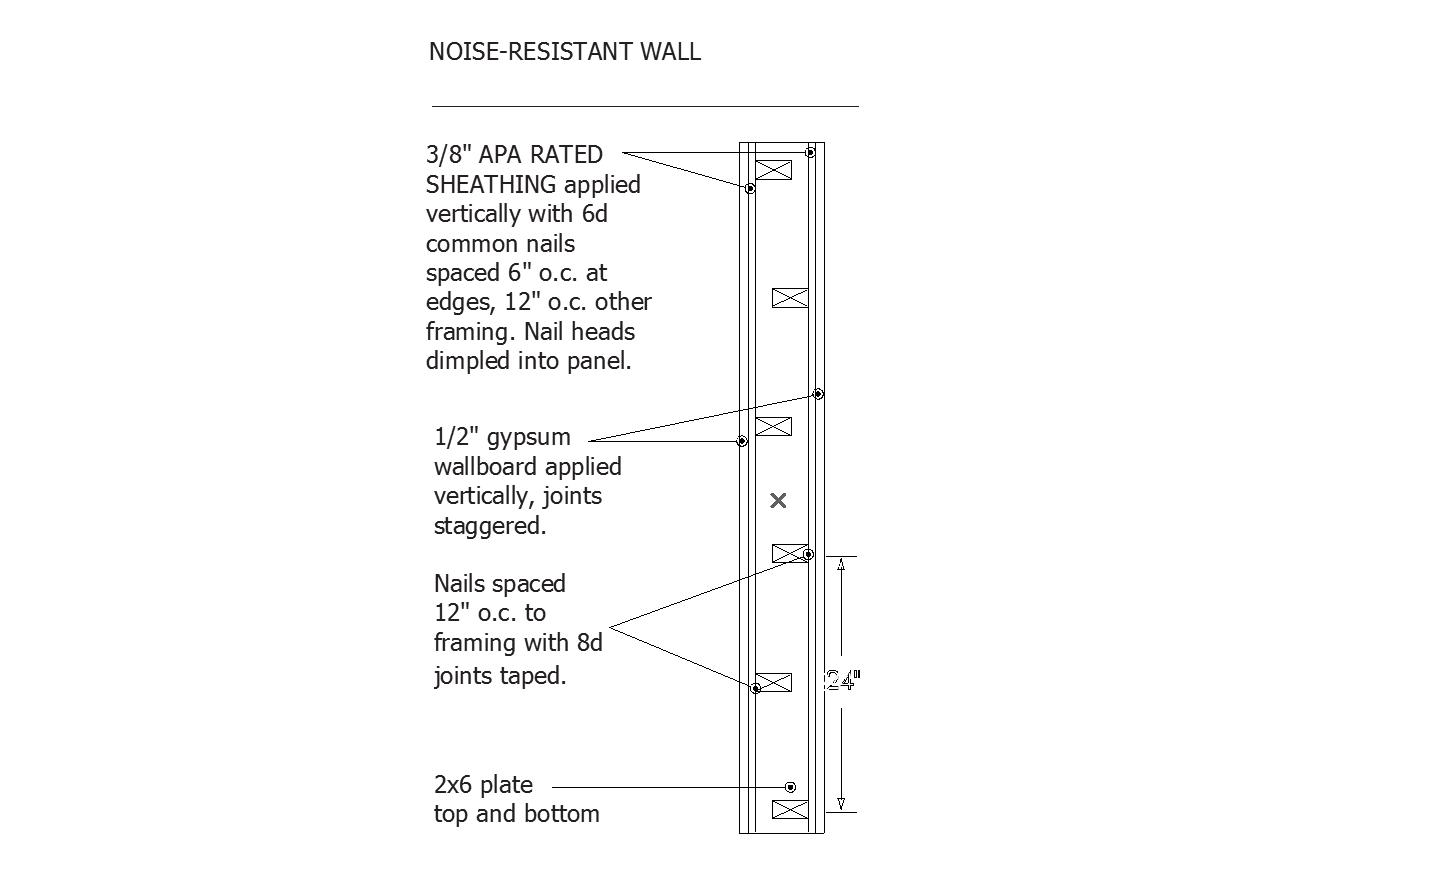 soundproofing common walls?-noise-resistant-wall.jpg